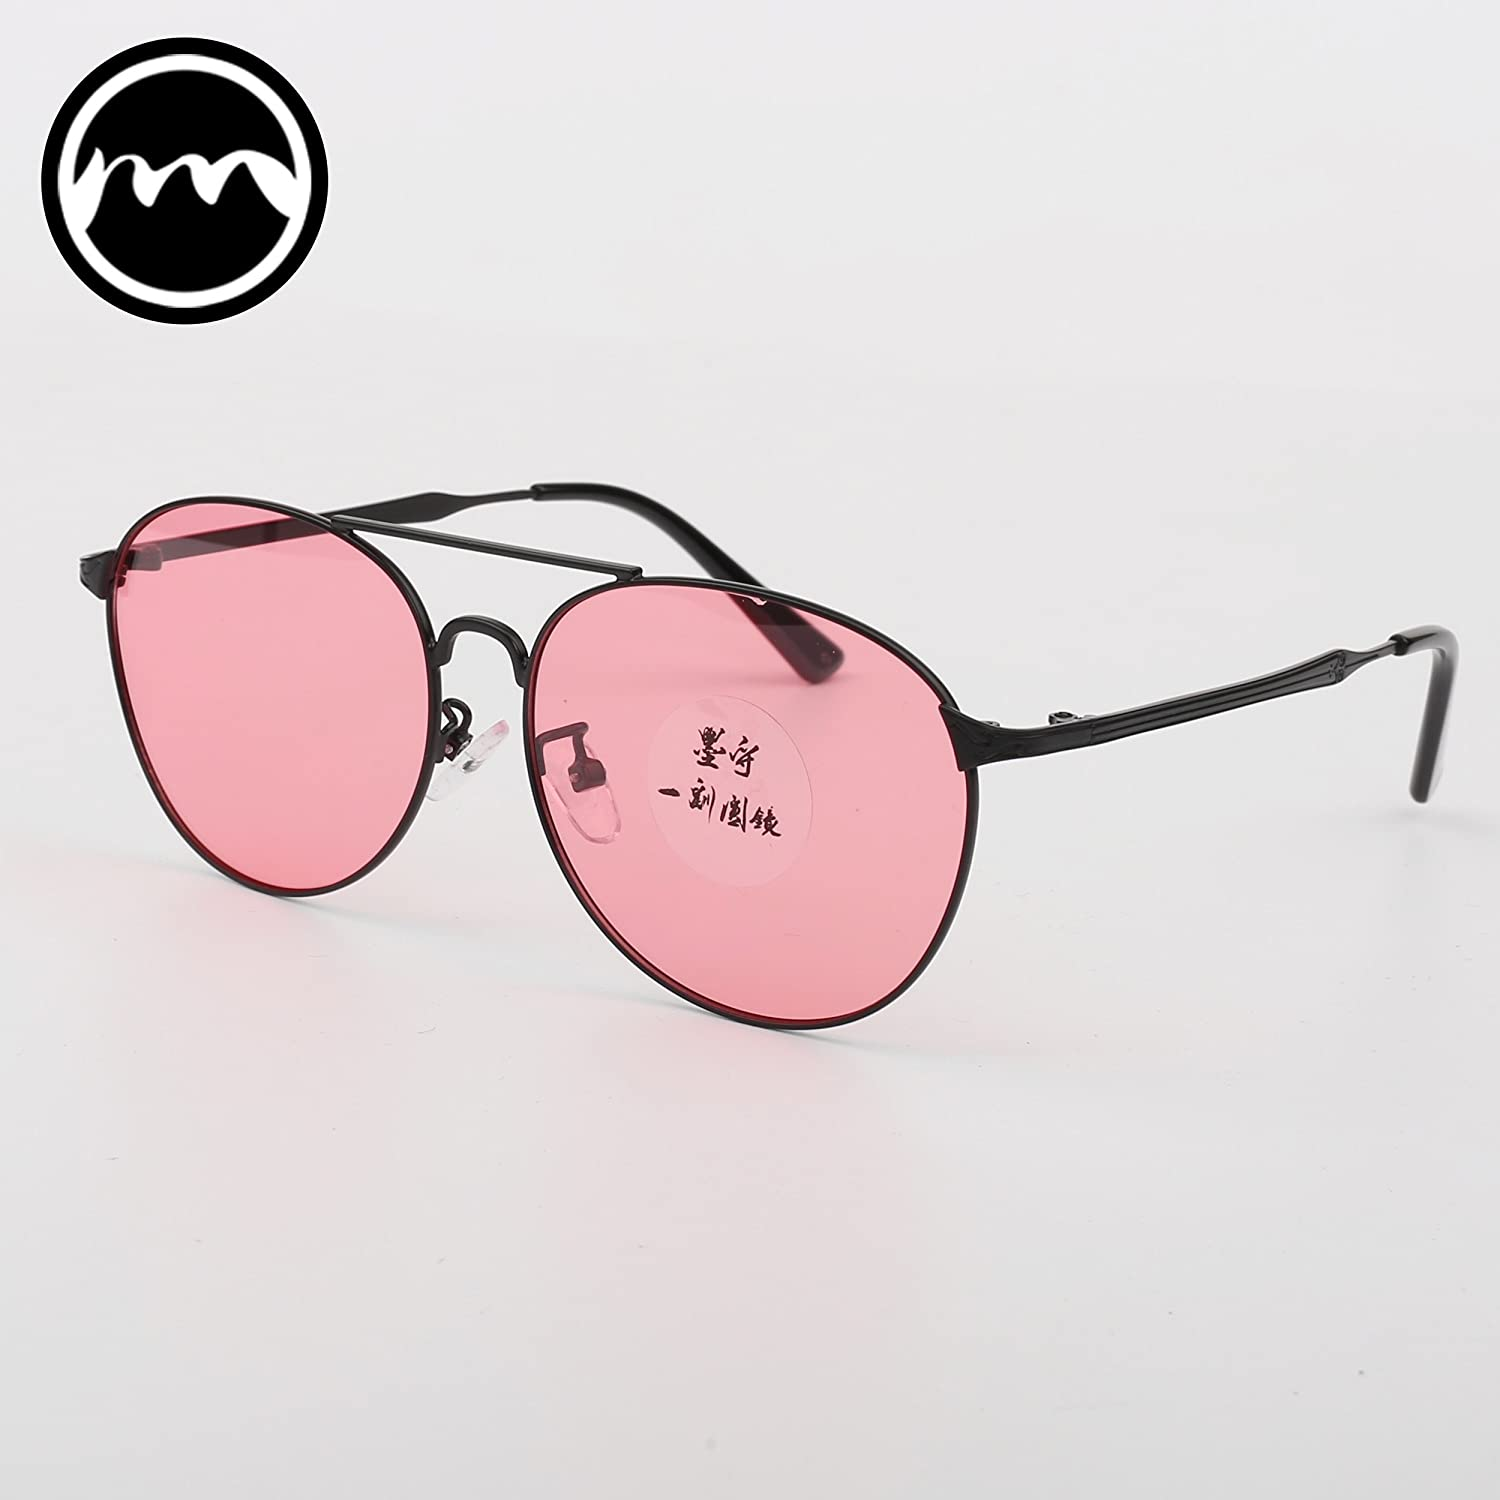 VVIIYJ color Transparent Frog Mirror Female Sunglasses Light colord Sunglasses colord Glasses Night Vision Polarizer Male